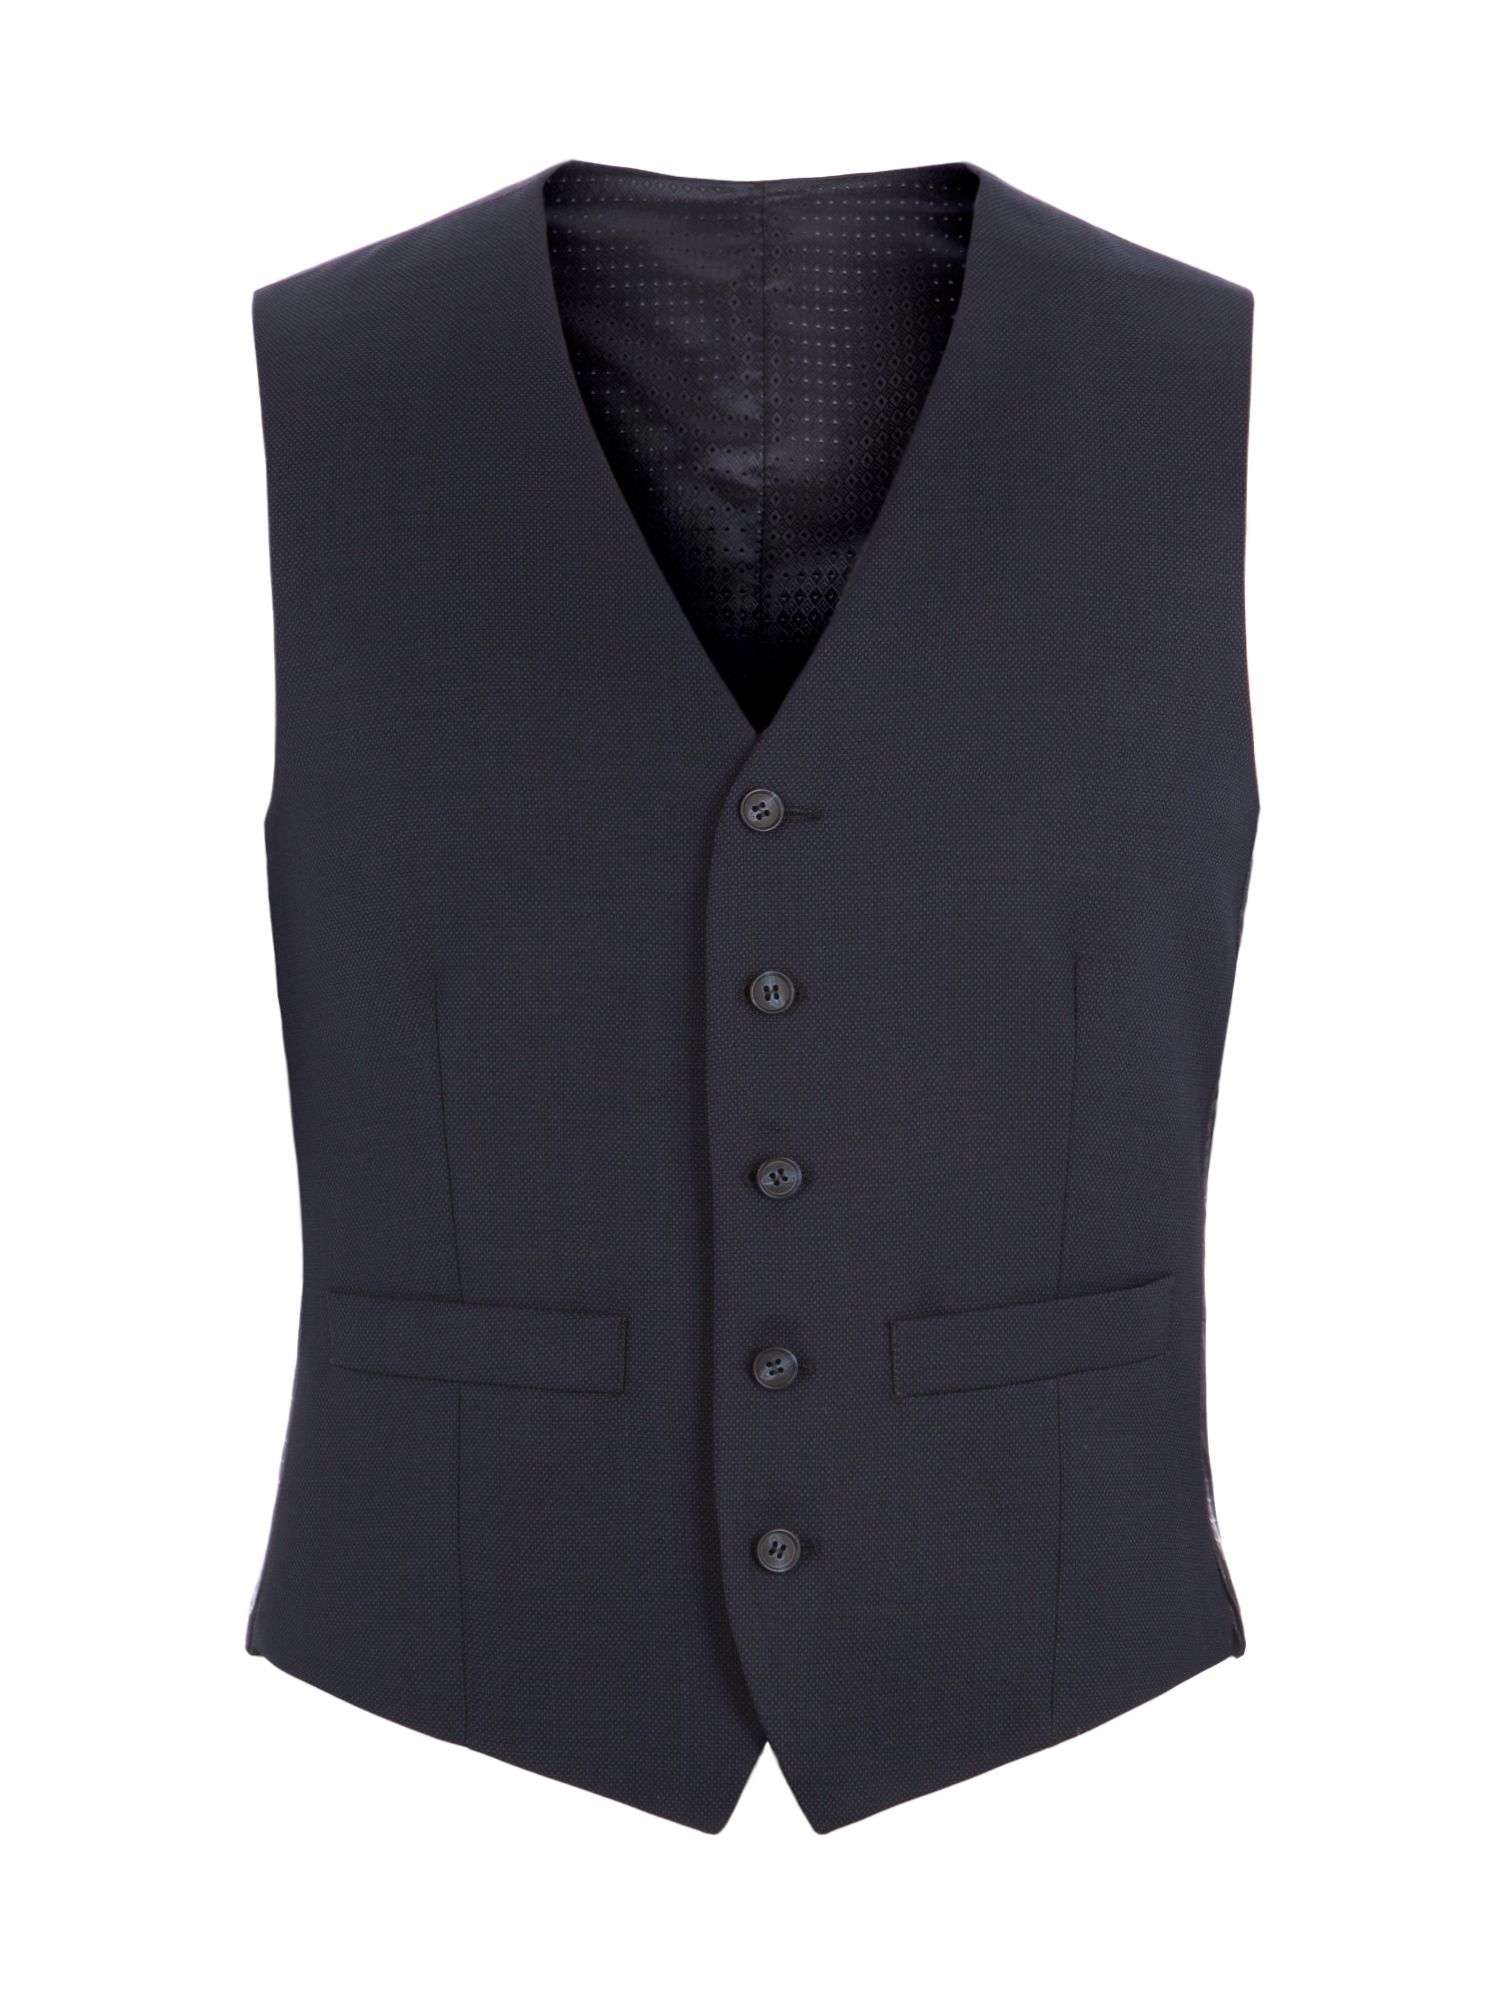 Men's Pierre Cardin Edward Navy Birdseye Vest, Navy